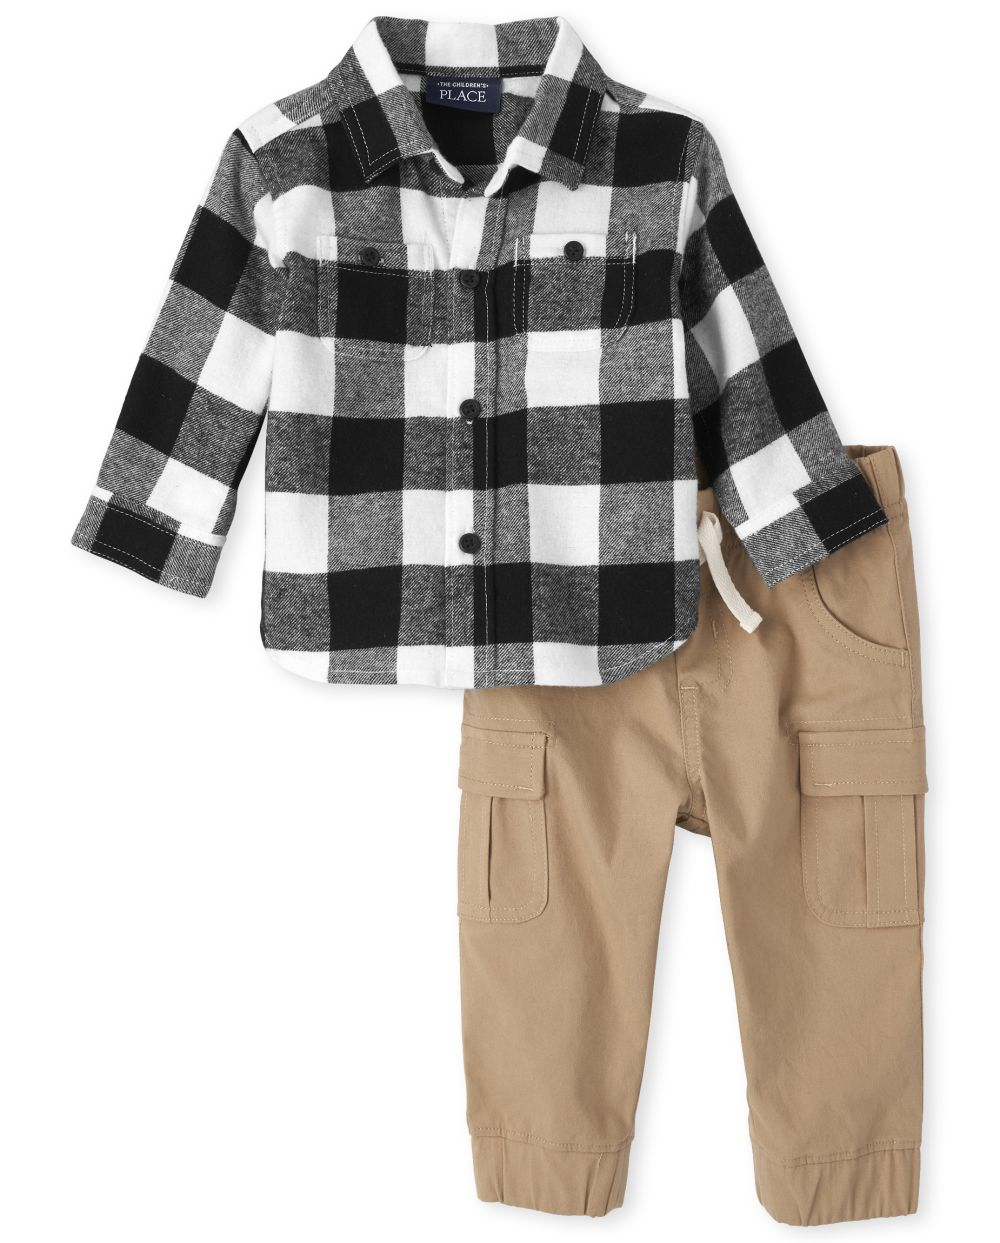 Baby Boys Buffalo Plaid Flannel Outfit Set